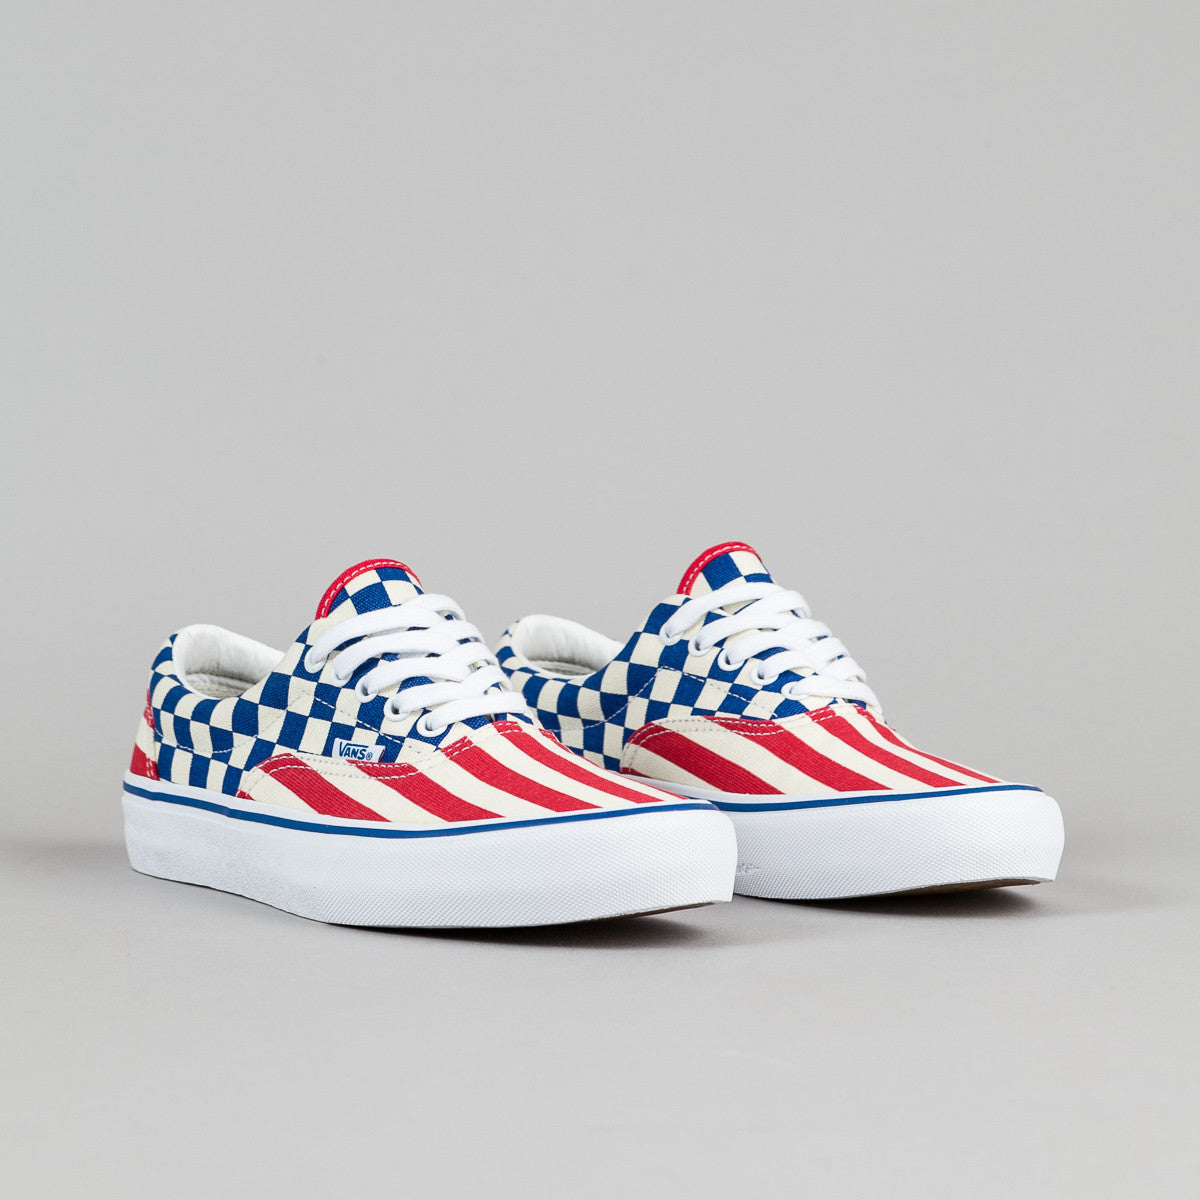 Vans 50th Era Pro '83 Shoes - Stripes / Checkers